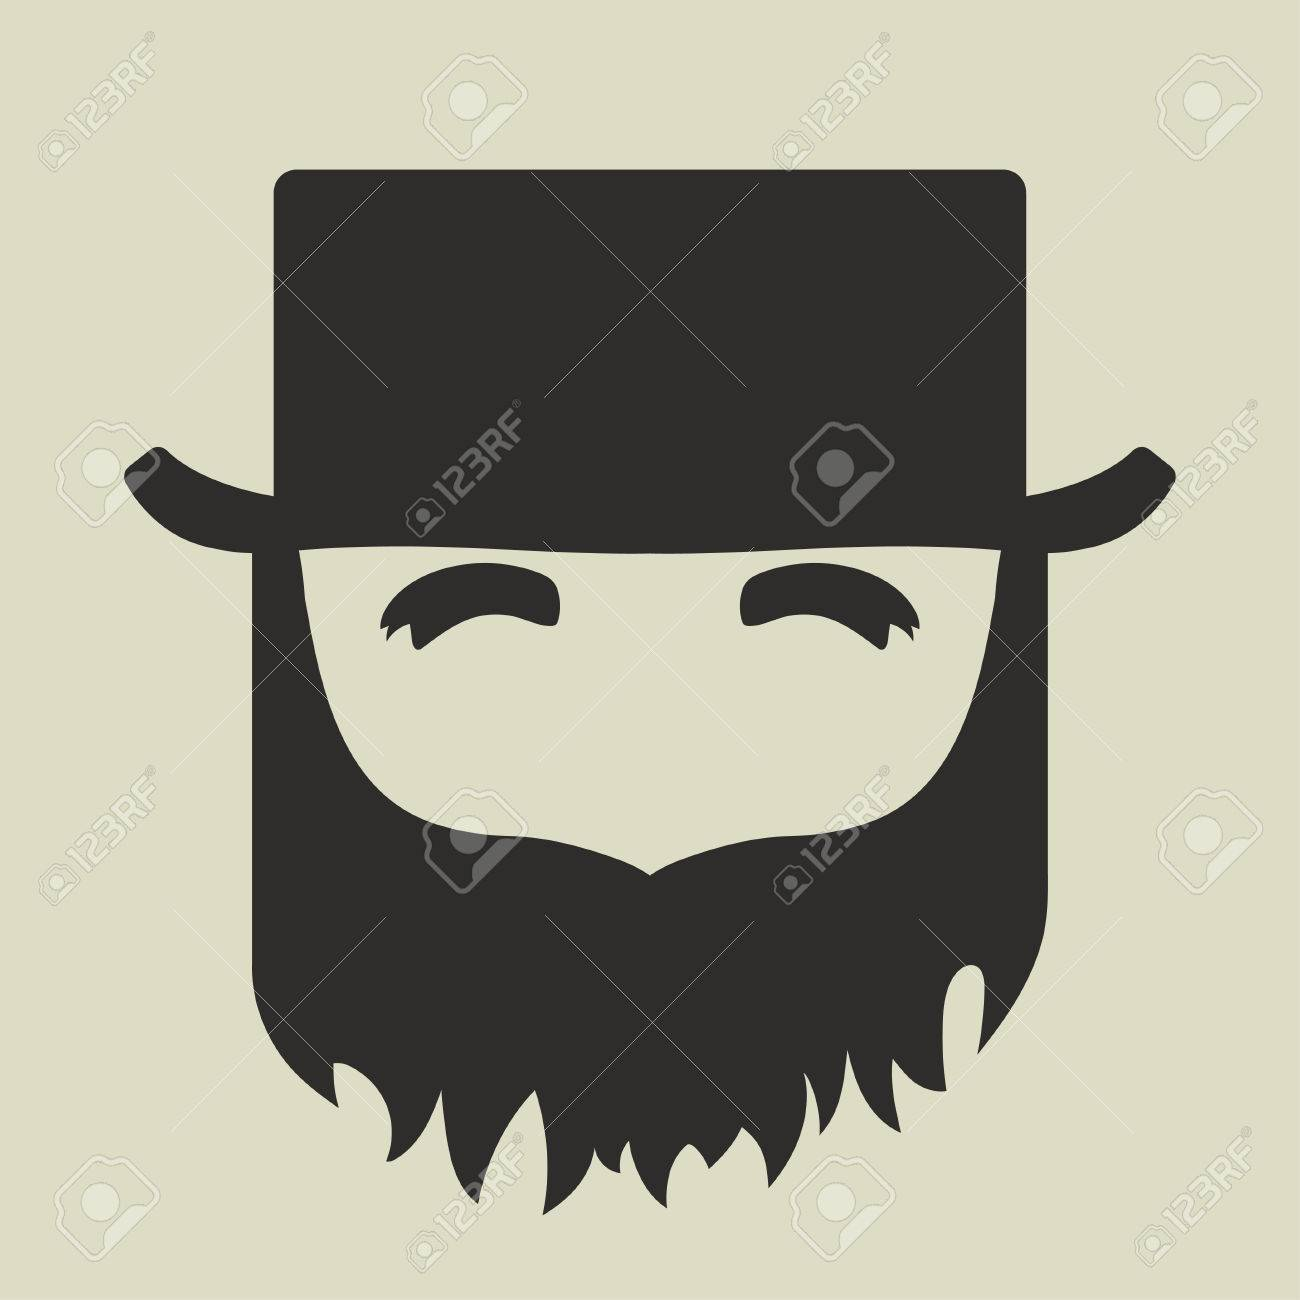 png black and white stock X free clip art. Beard clipart bushy.